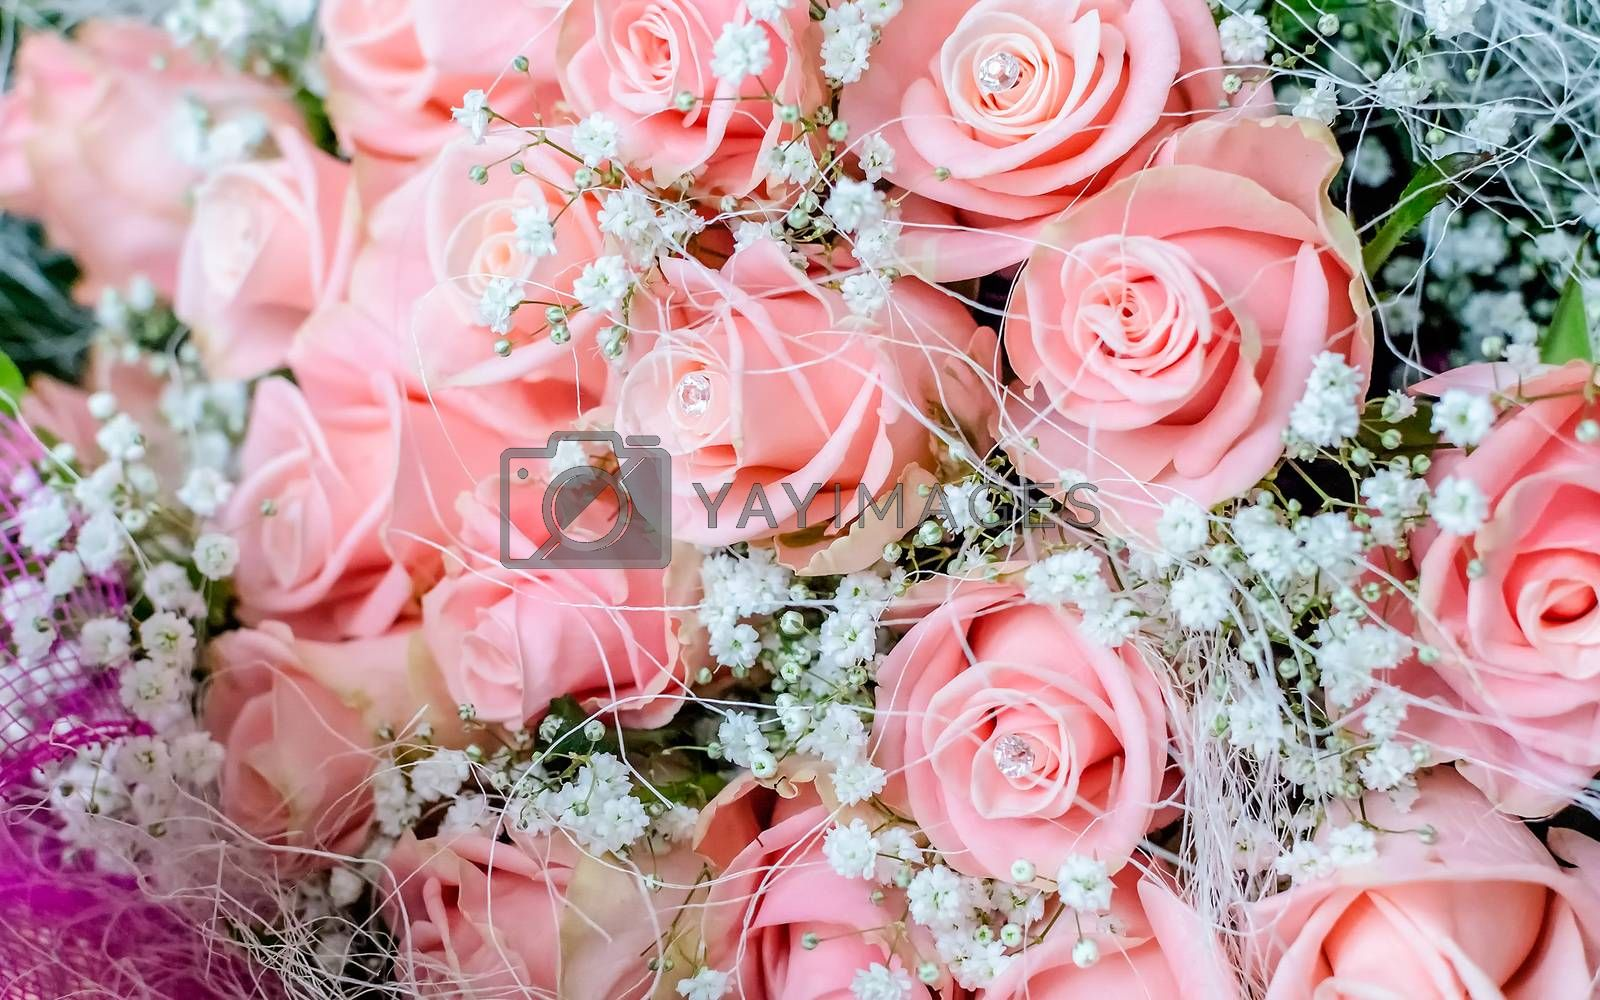 Bouquet of pink roses with small briliants. Romantic concept for Valentine's Day